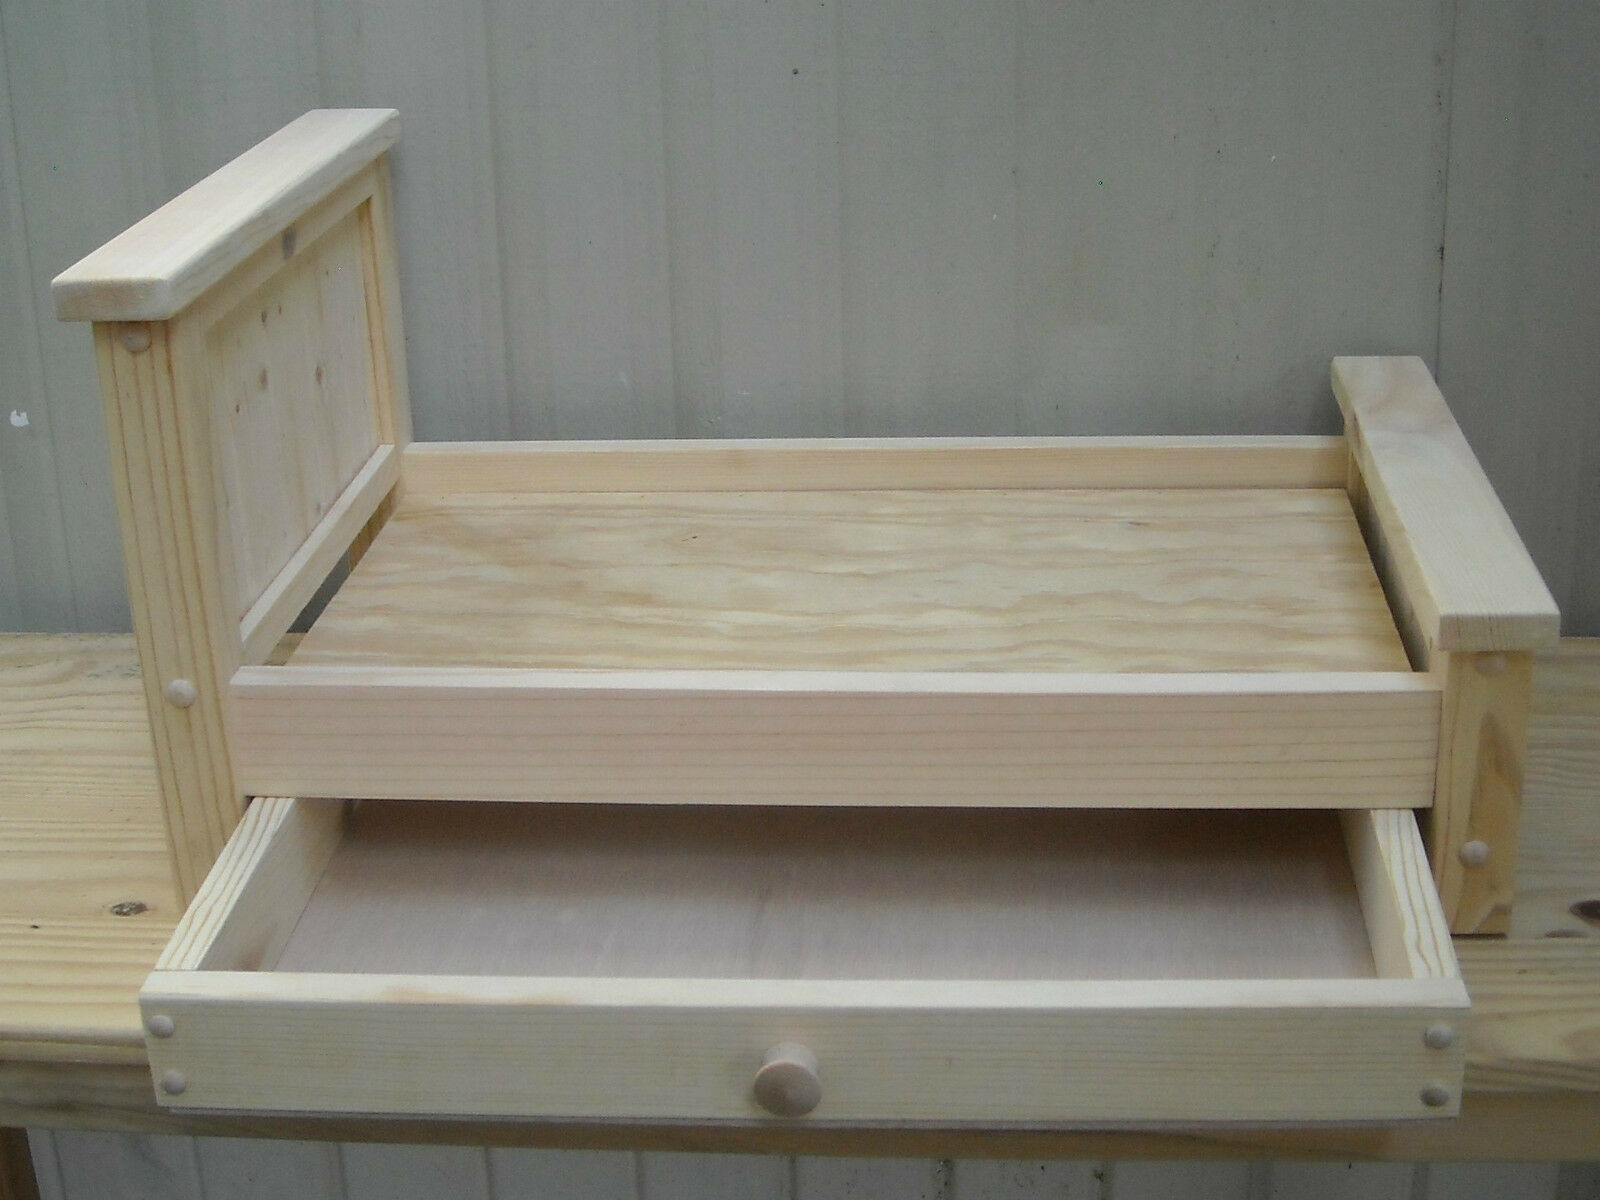 Marvelous photograph of Handmade Rustic Style Trundle Bed for 18 inch doll with #6B614C color and 1600x1200 pixels